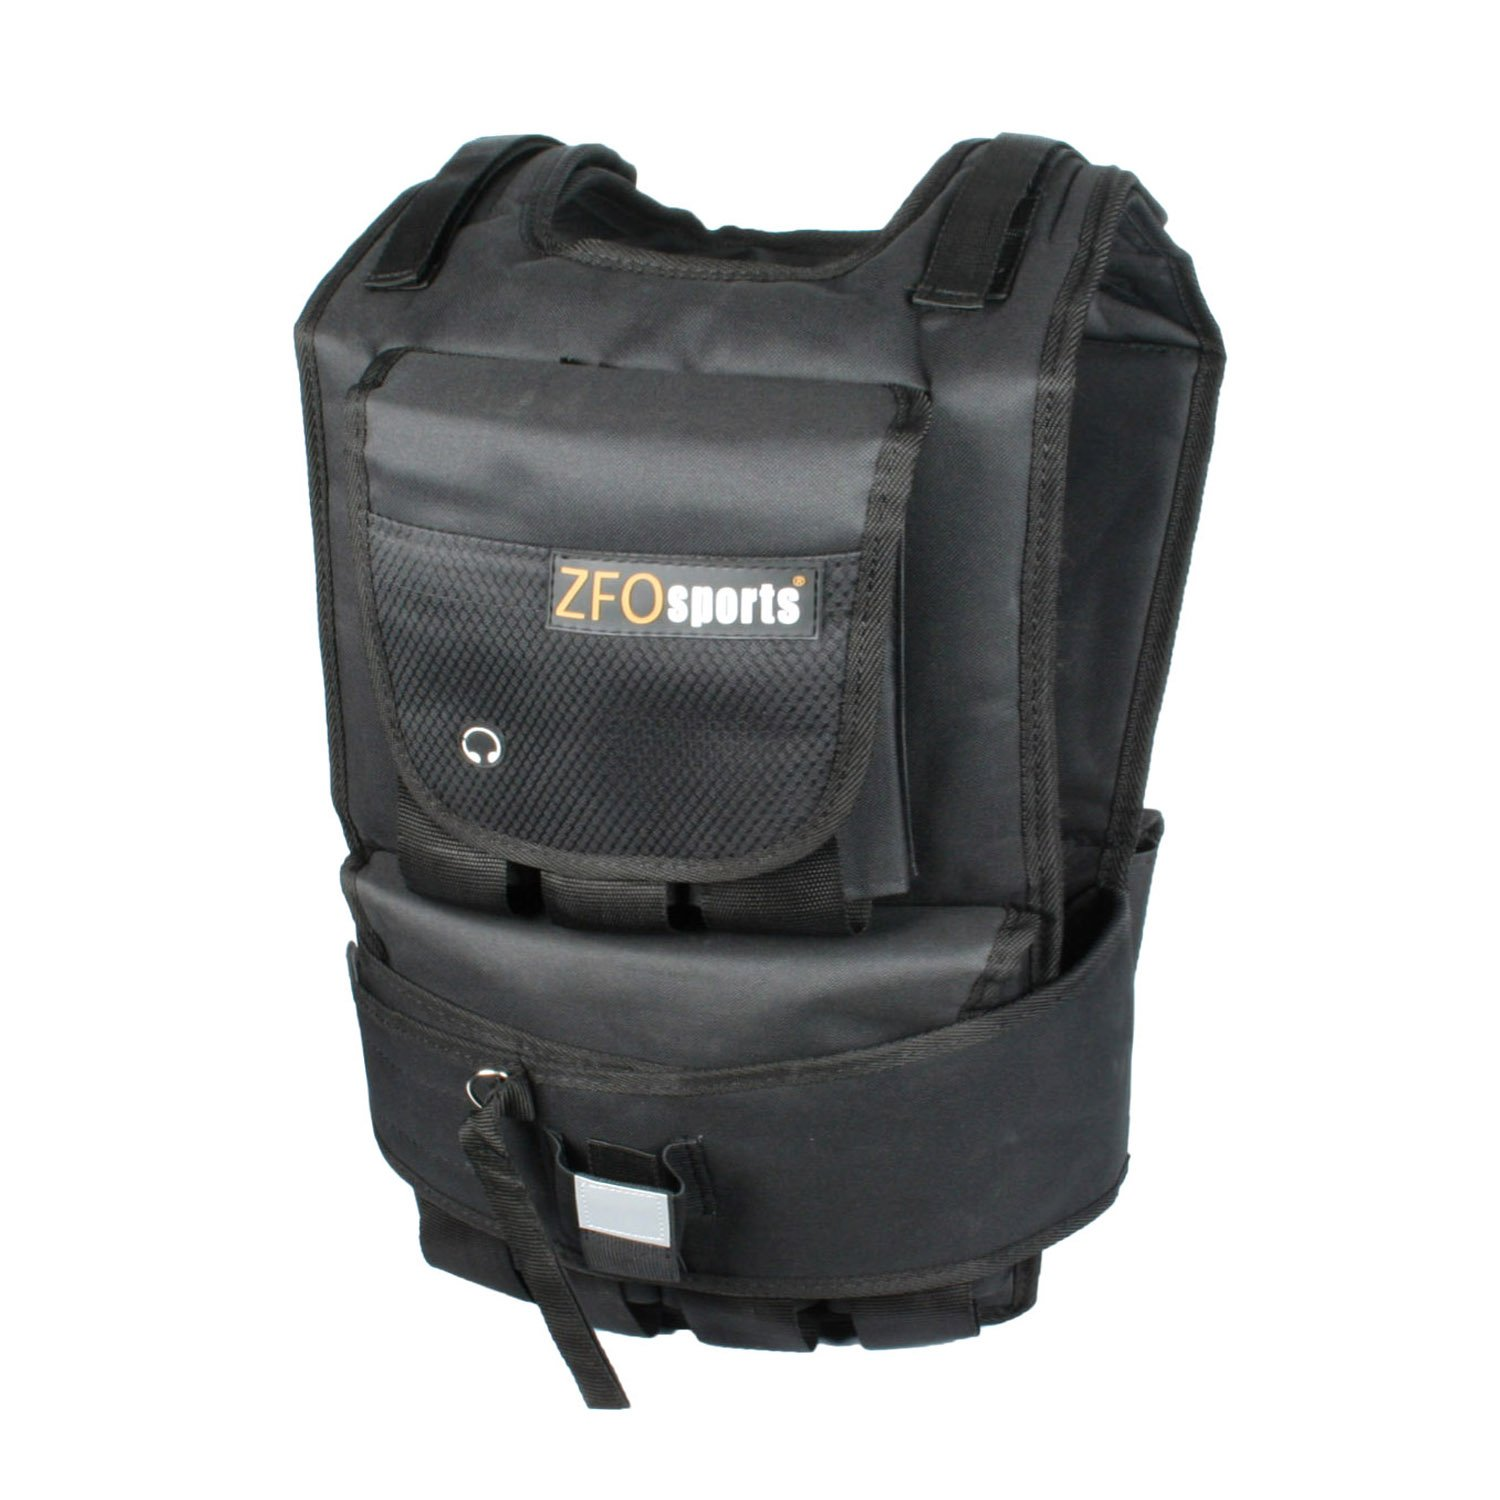 ZFOsports® - 60LBS WEIGHTED VEST